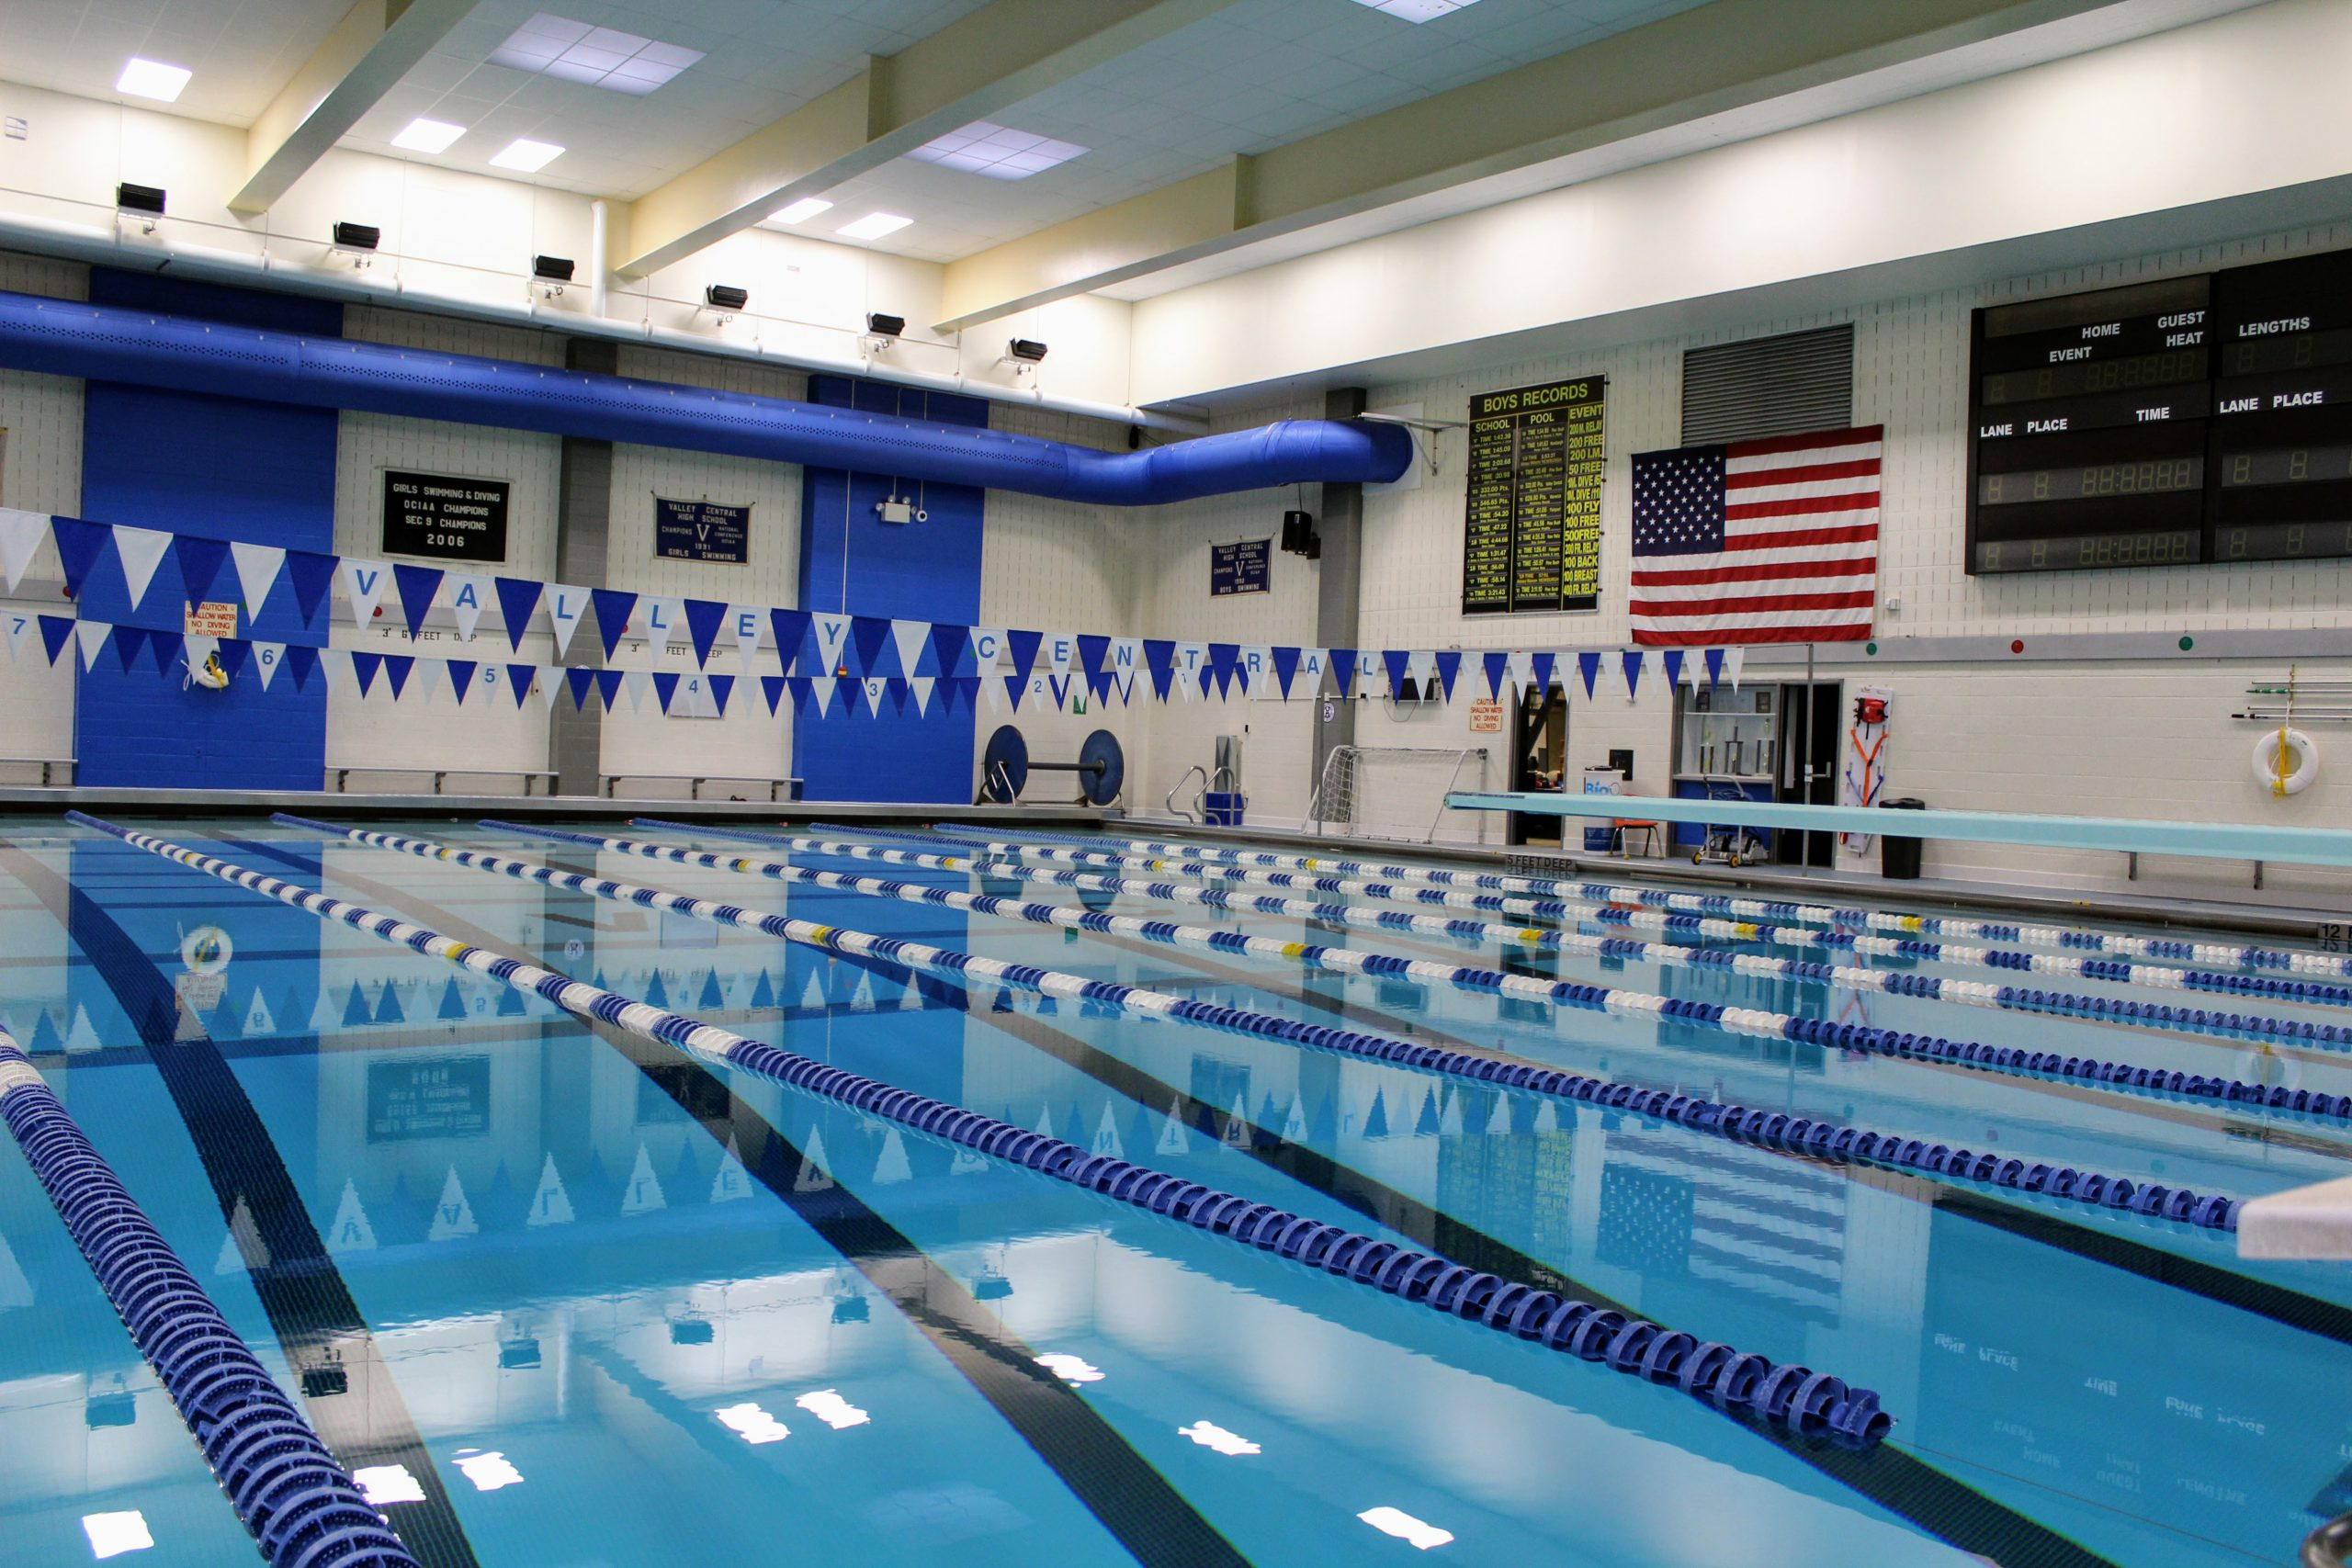 VC Pool showing the still water, lanes and deck with American Flag. There are blue and white flag banners above the water